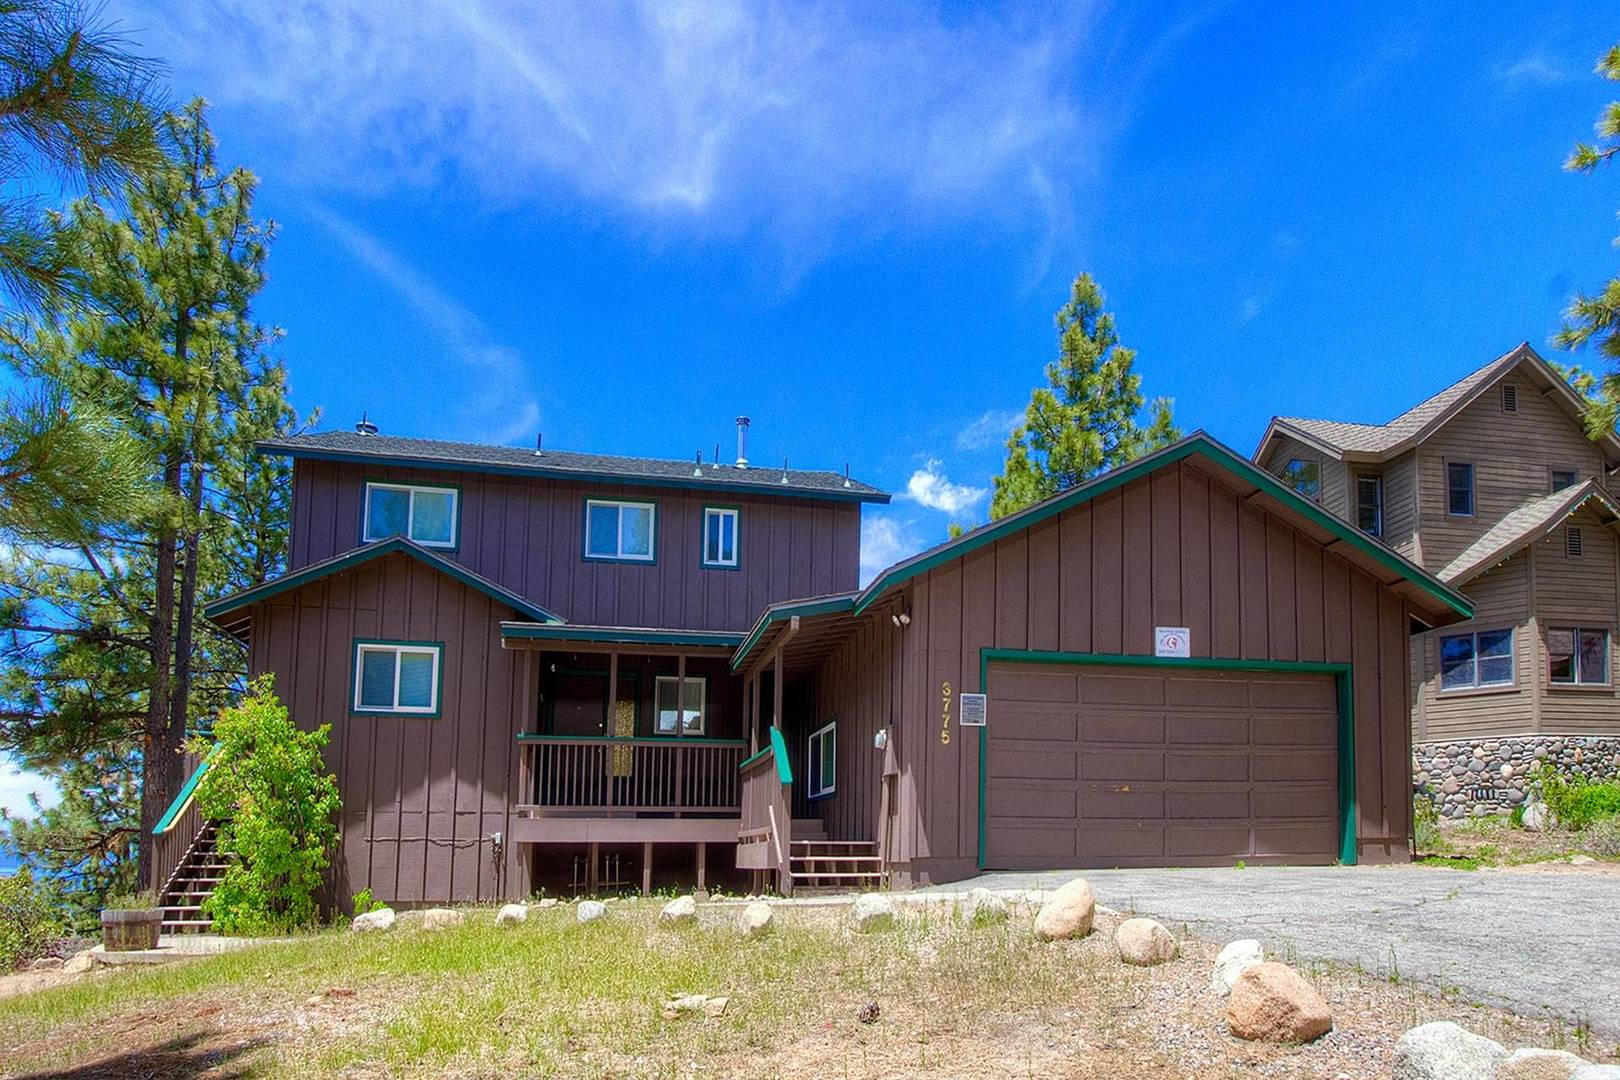 hch1475 lake tahoe vacation rental